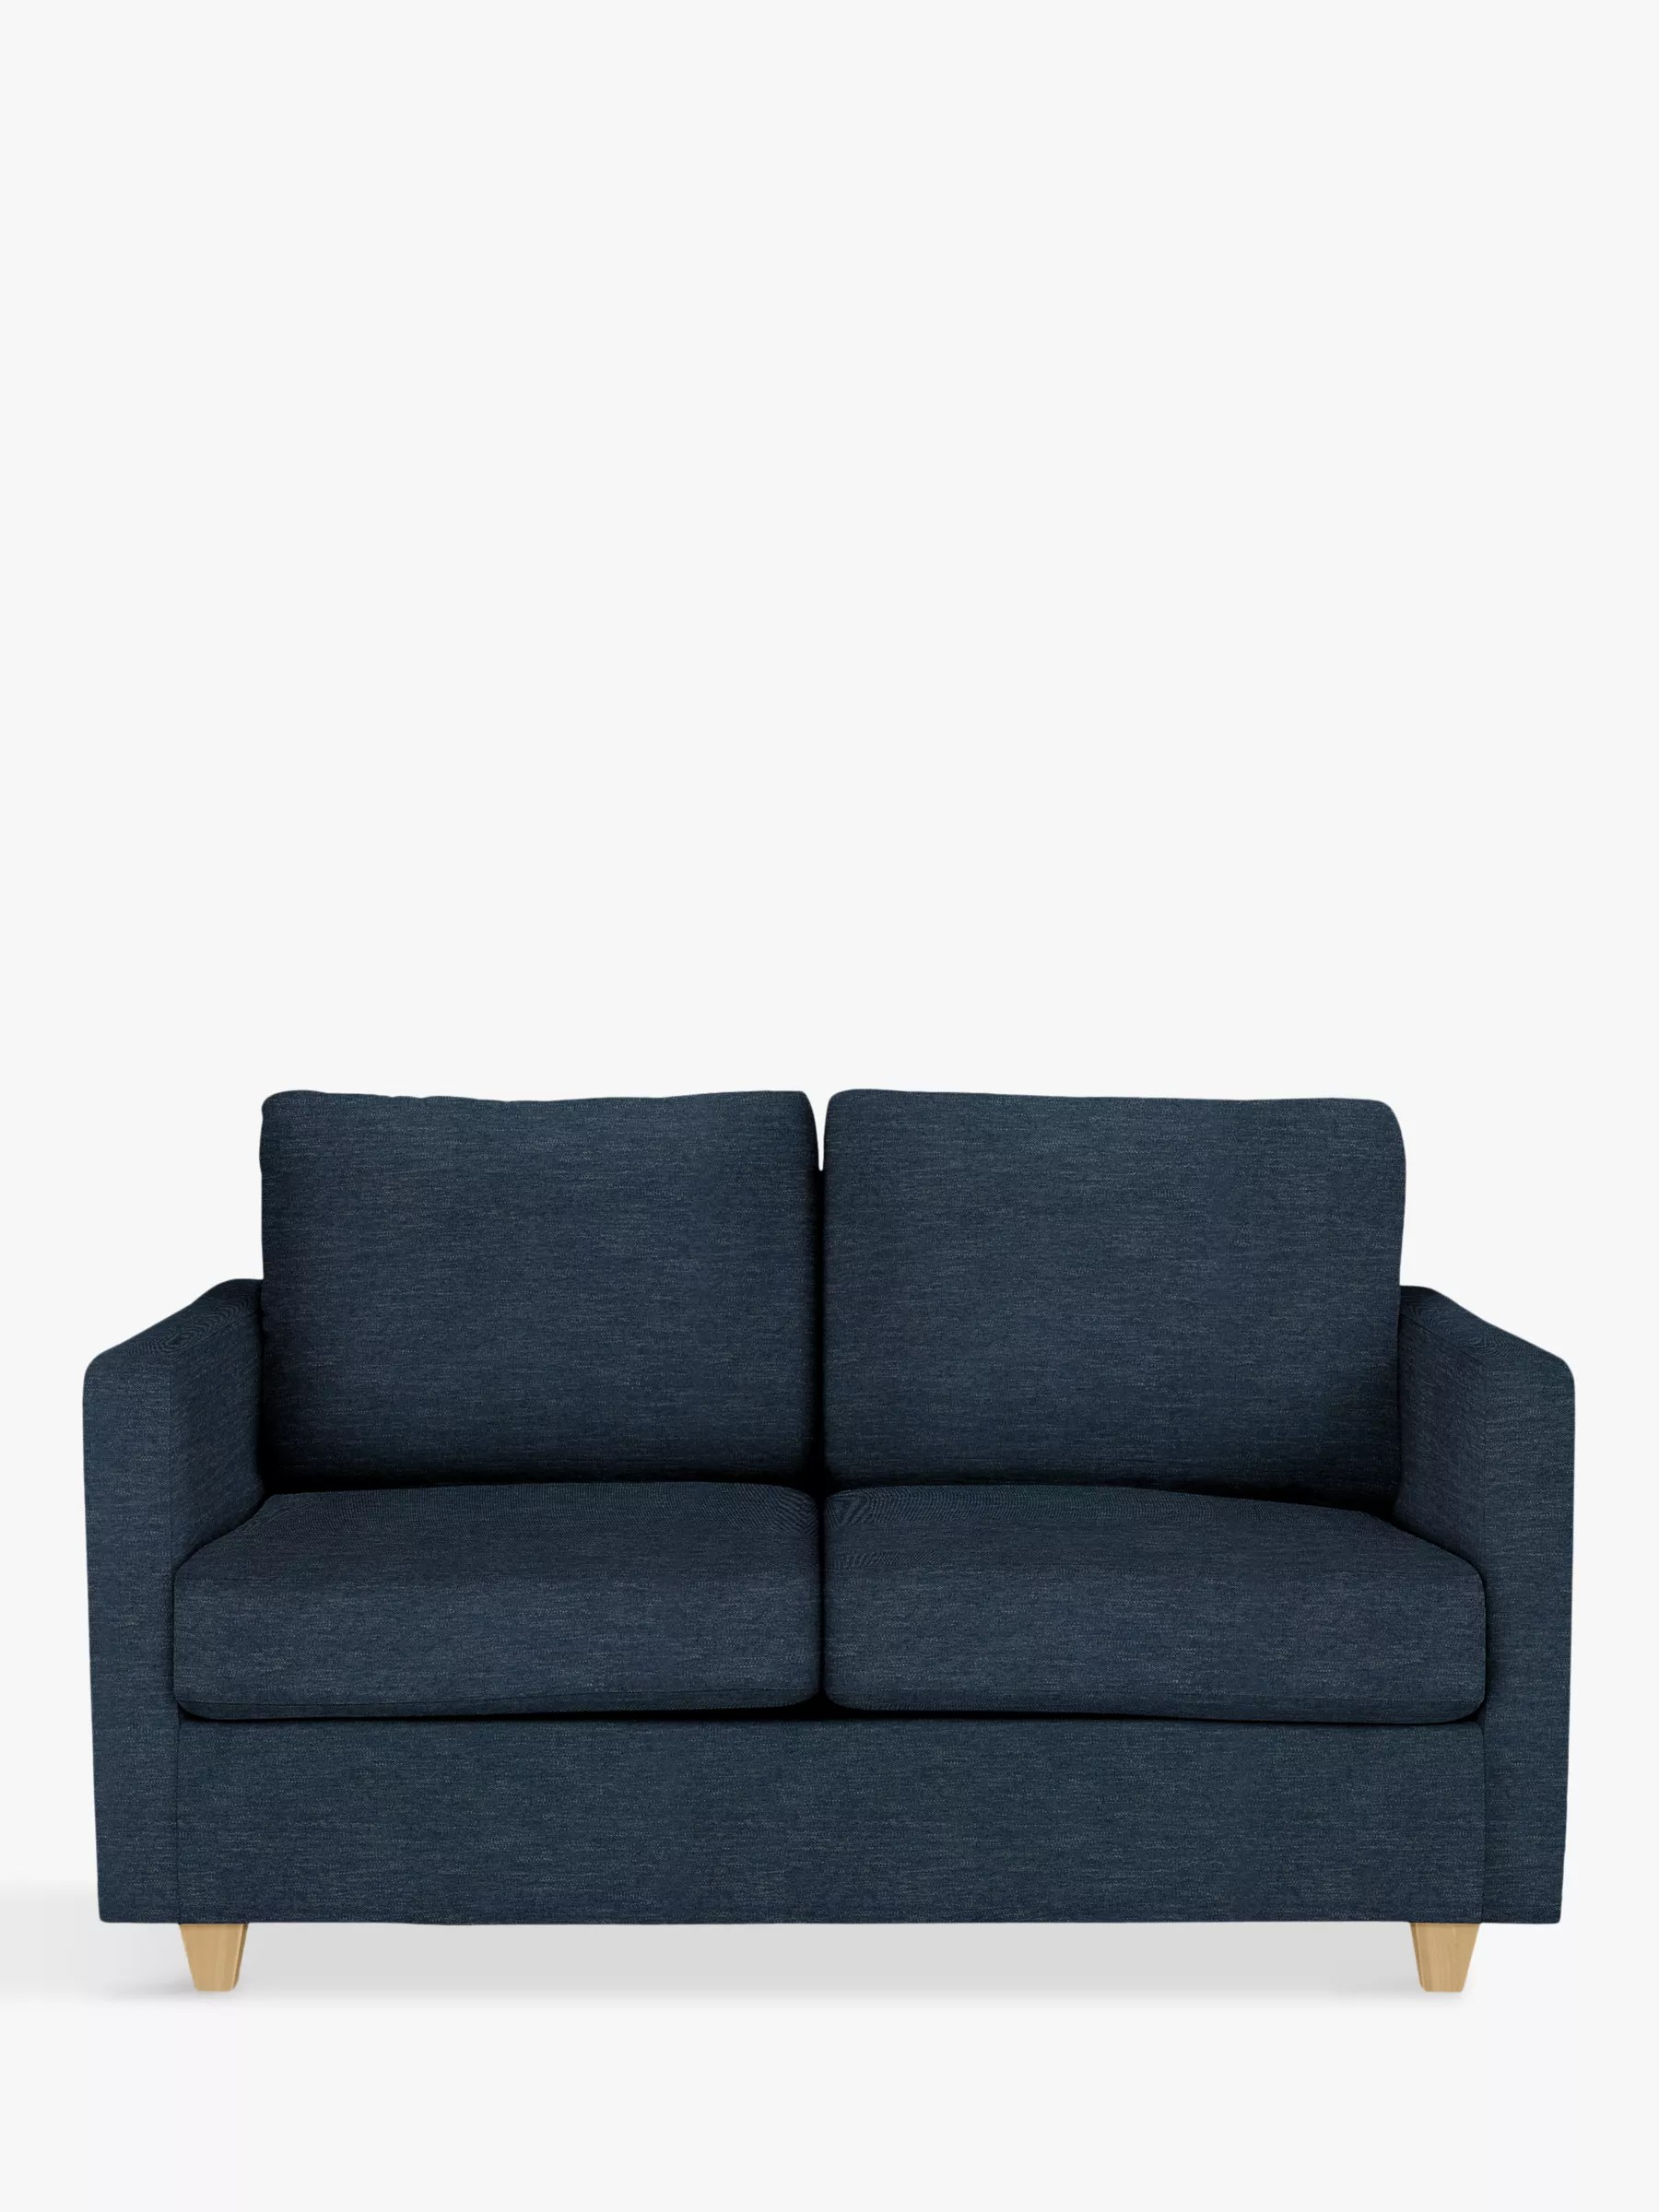 John Lewis Partners Barlow Small 2 Seater Sofa Bed With Pocket Sprung Mattress Erin Midnight